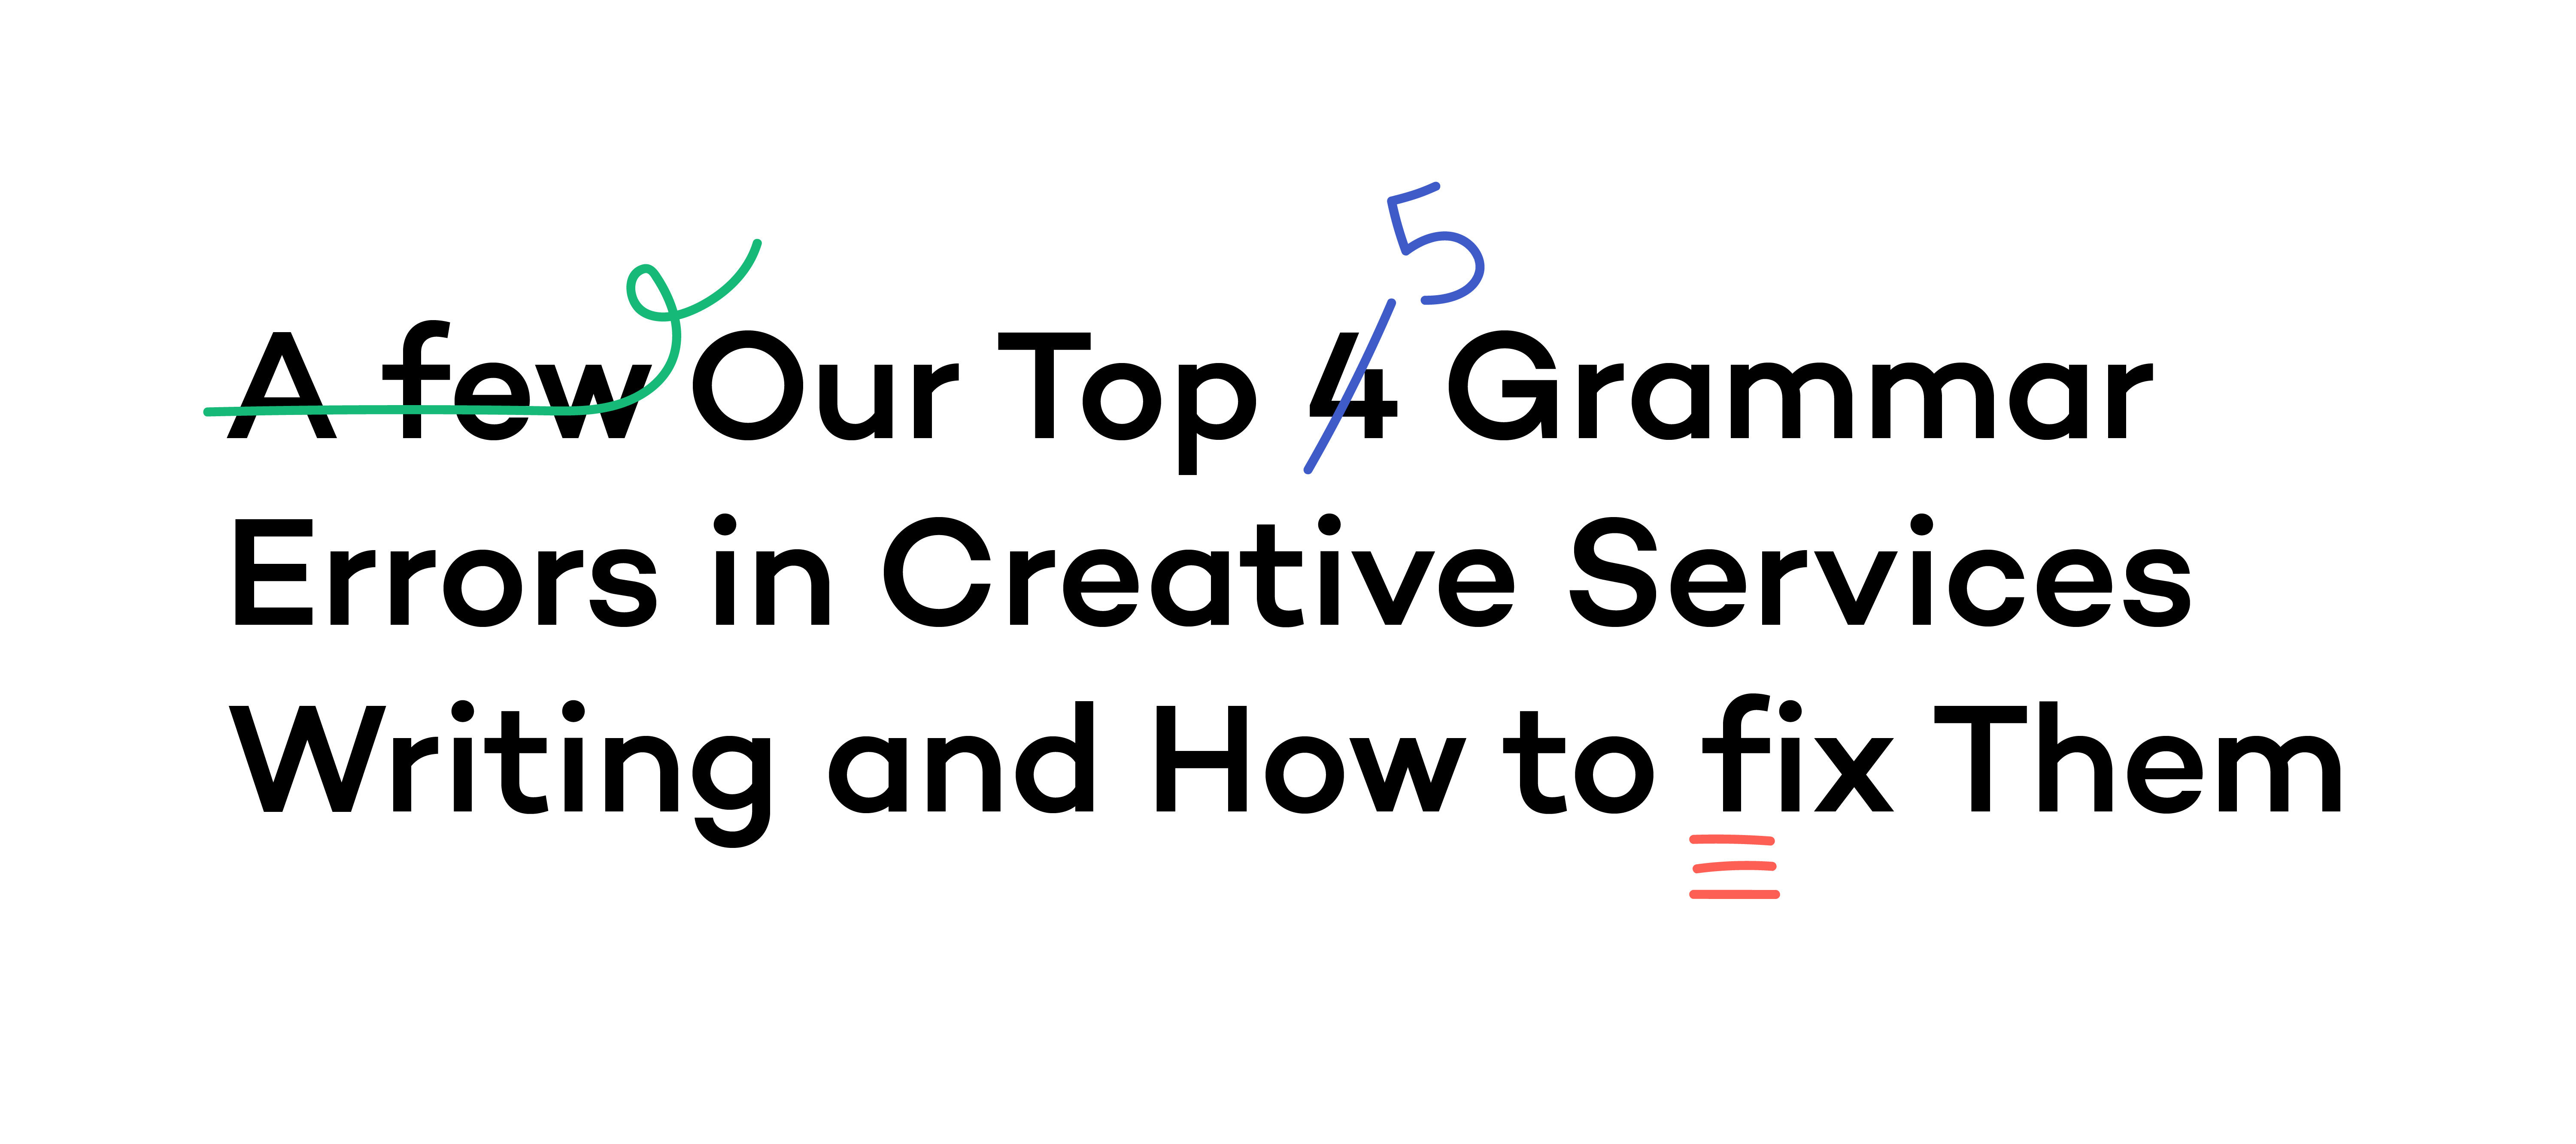 Our Top 5 List of Most Common Grammatical Errors » Smith